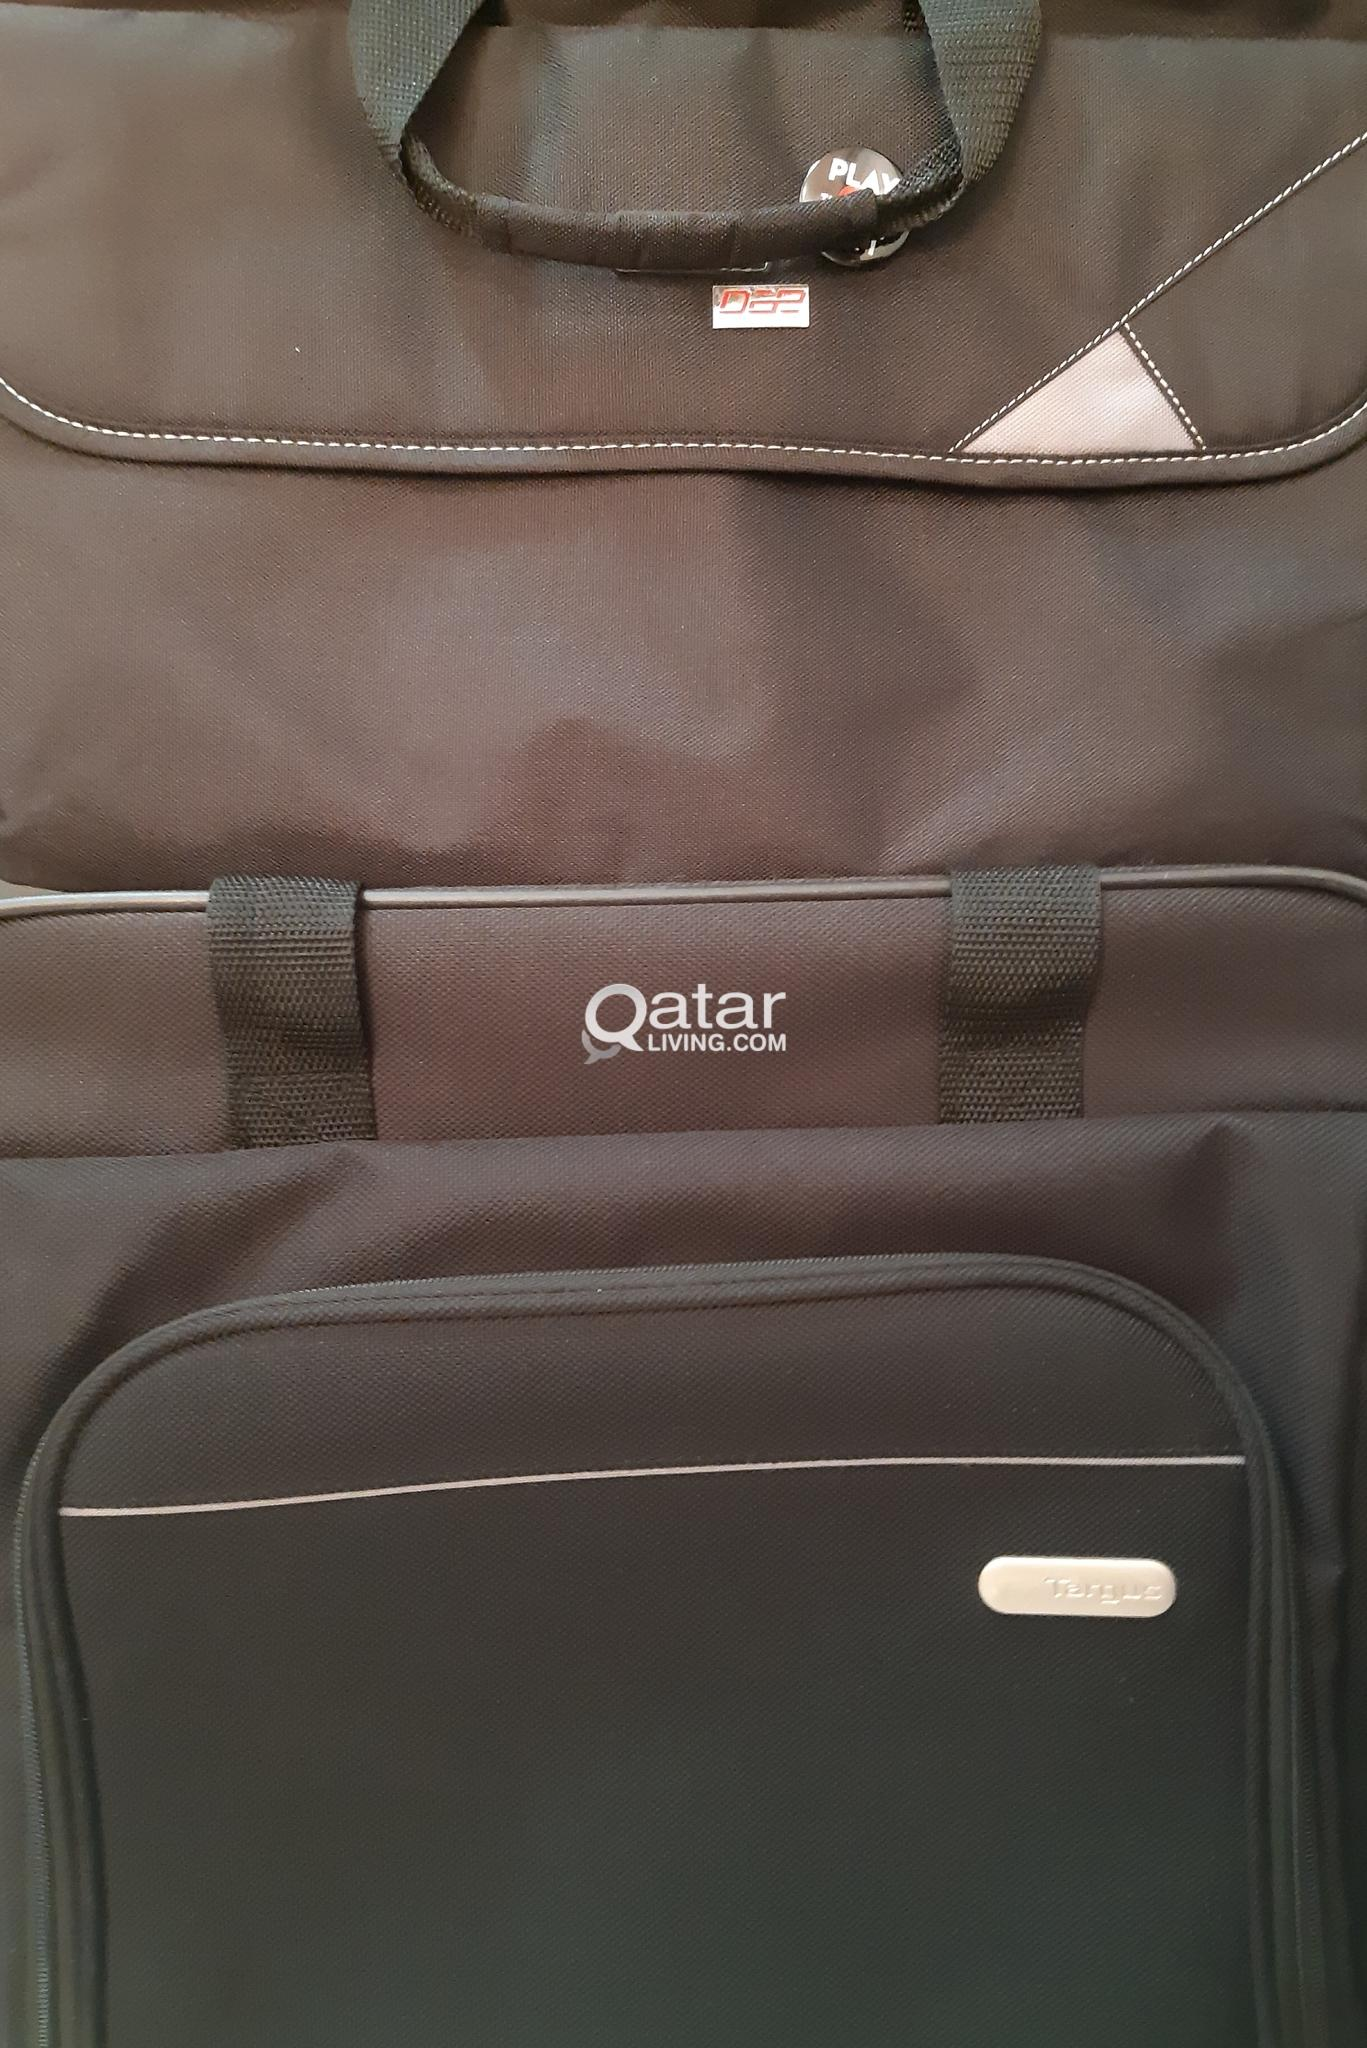 Trolley Bag Price In Qatar